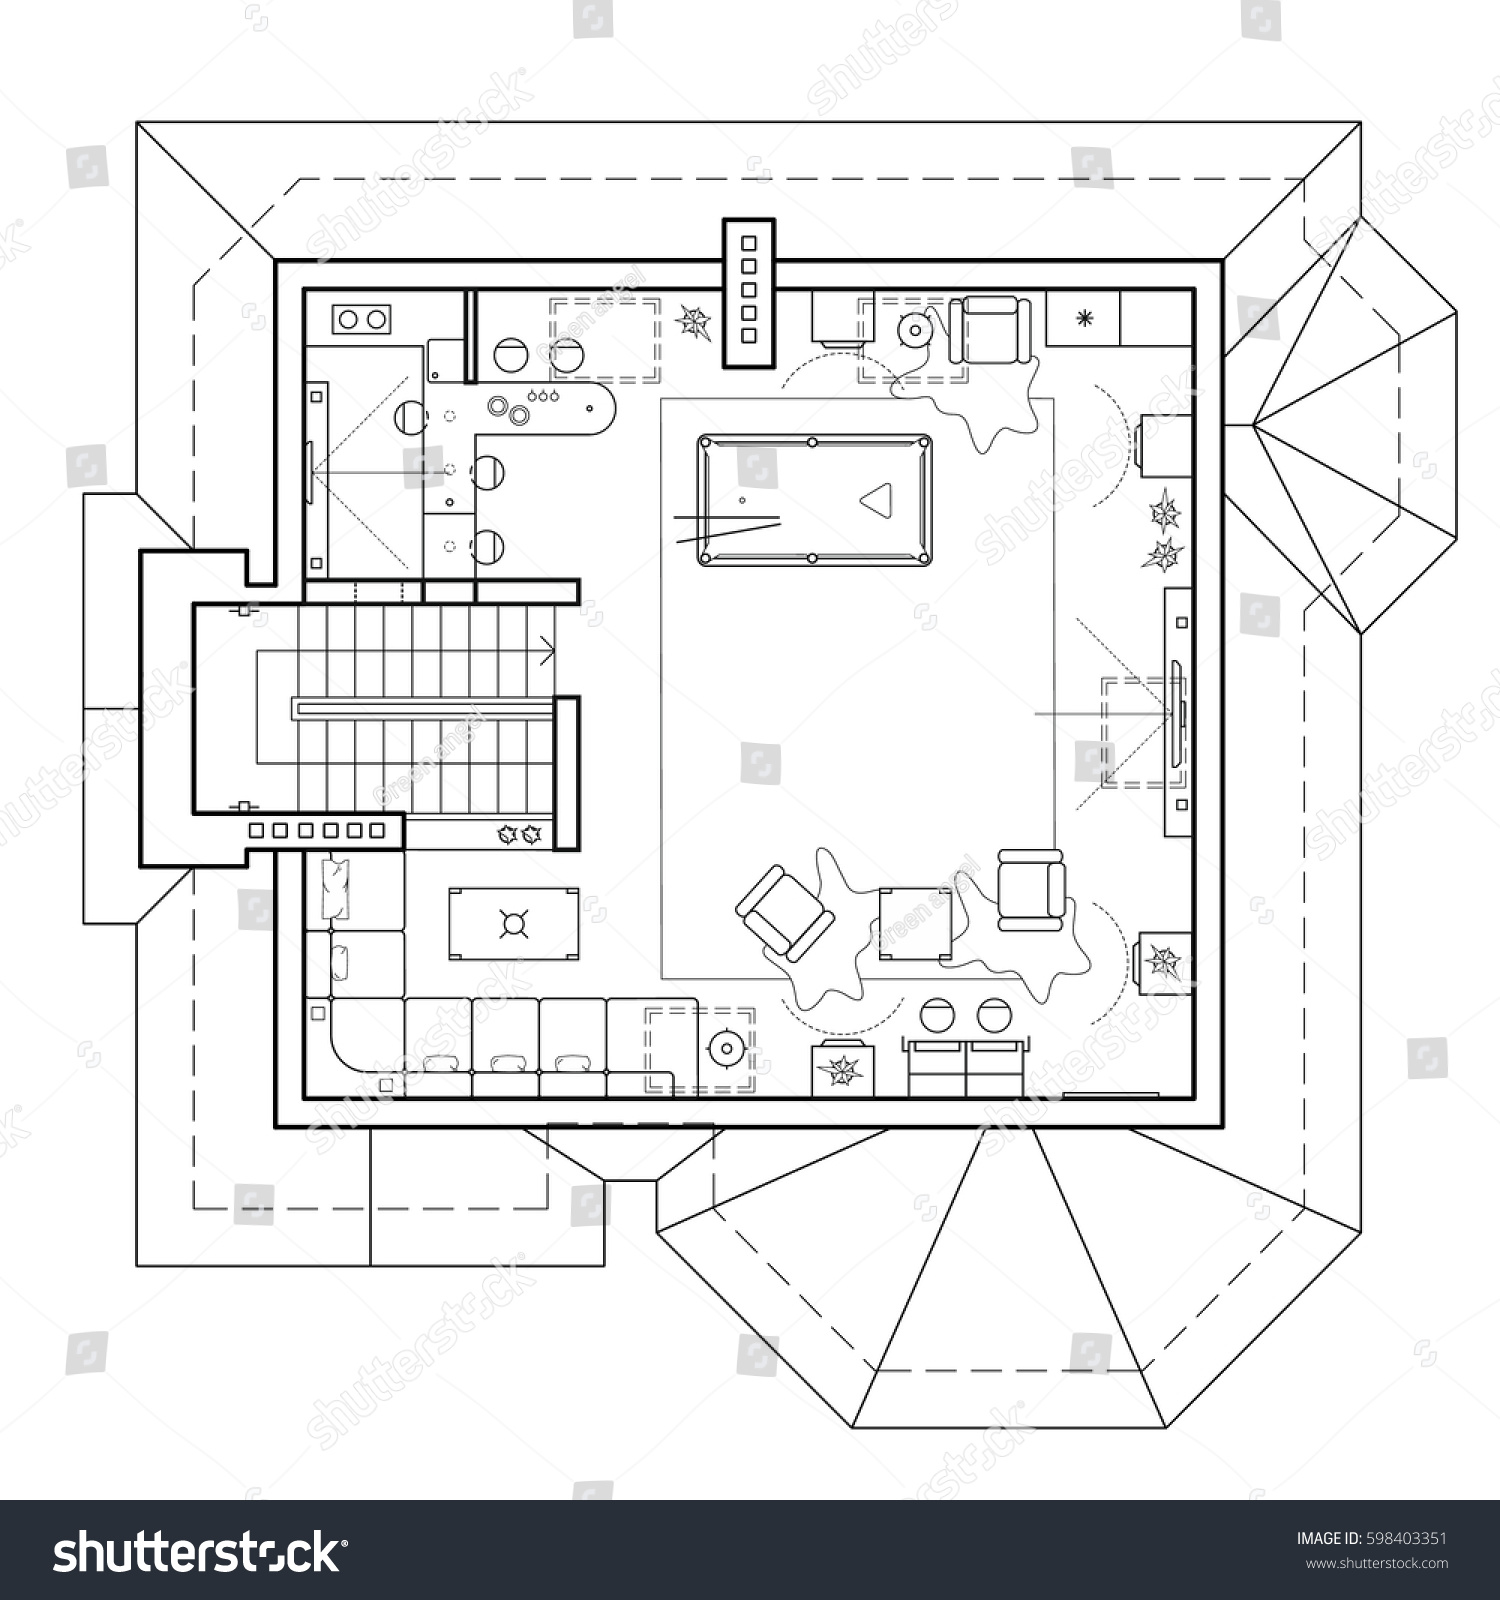 black white architectural plan house layout stock vector 598403351 black and white architectural plan of a house layout of the apartment with the furniture